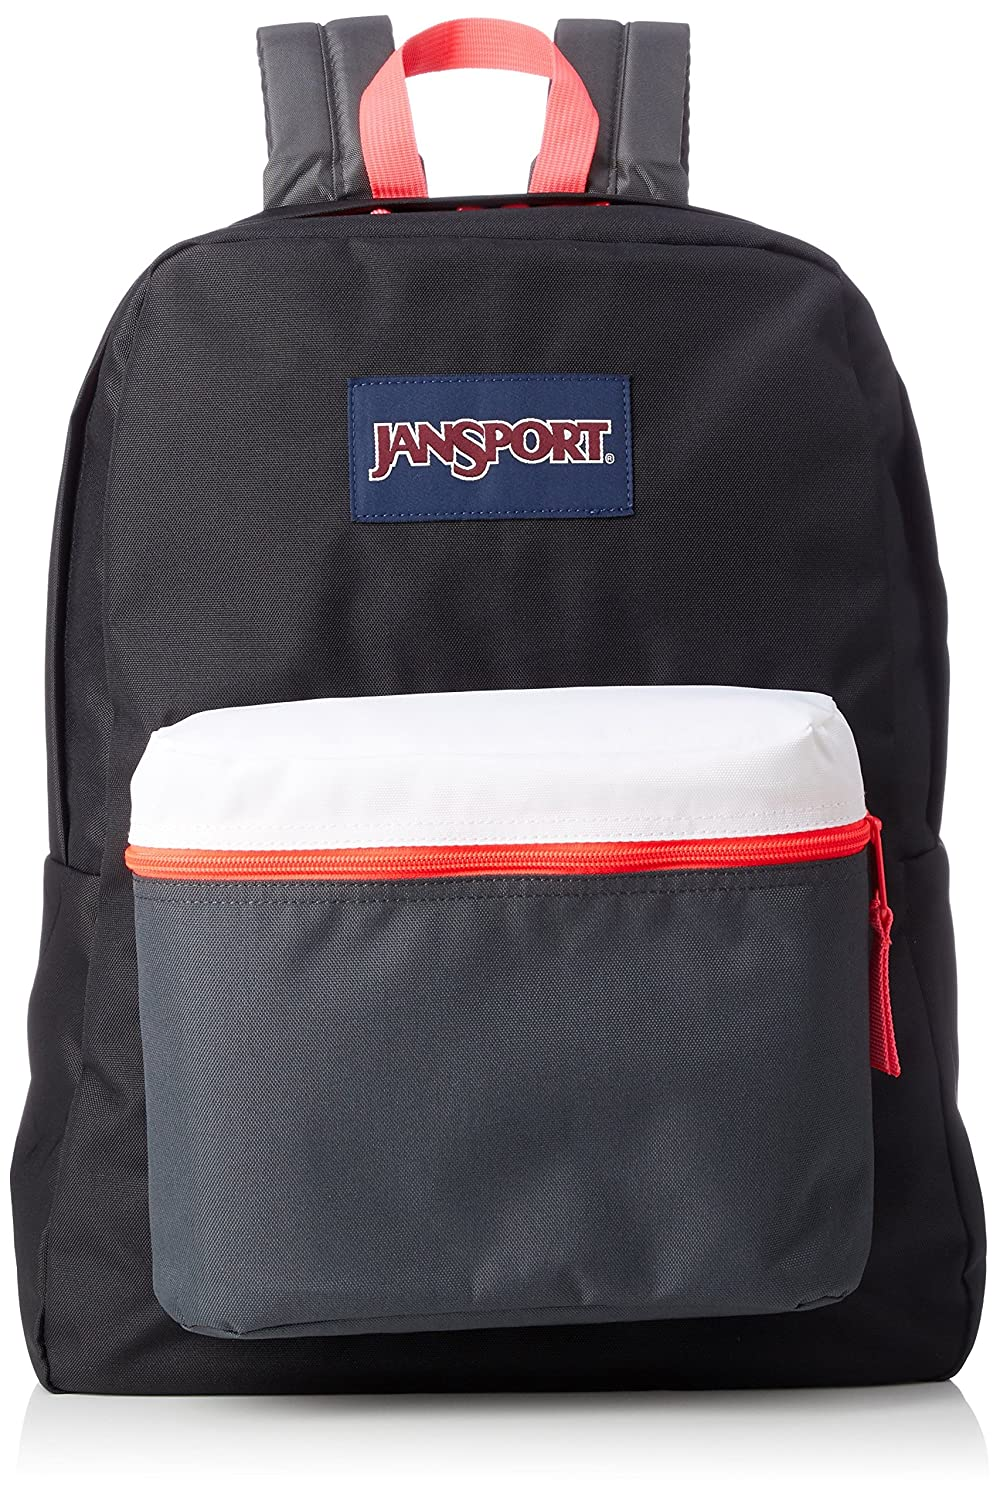 22e338636 Amazon.com | JanSport Exposed Backpack - Black/Fluorescent Red | Casual  Daypacks